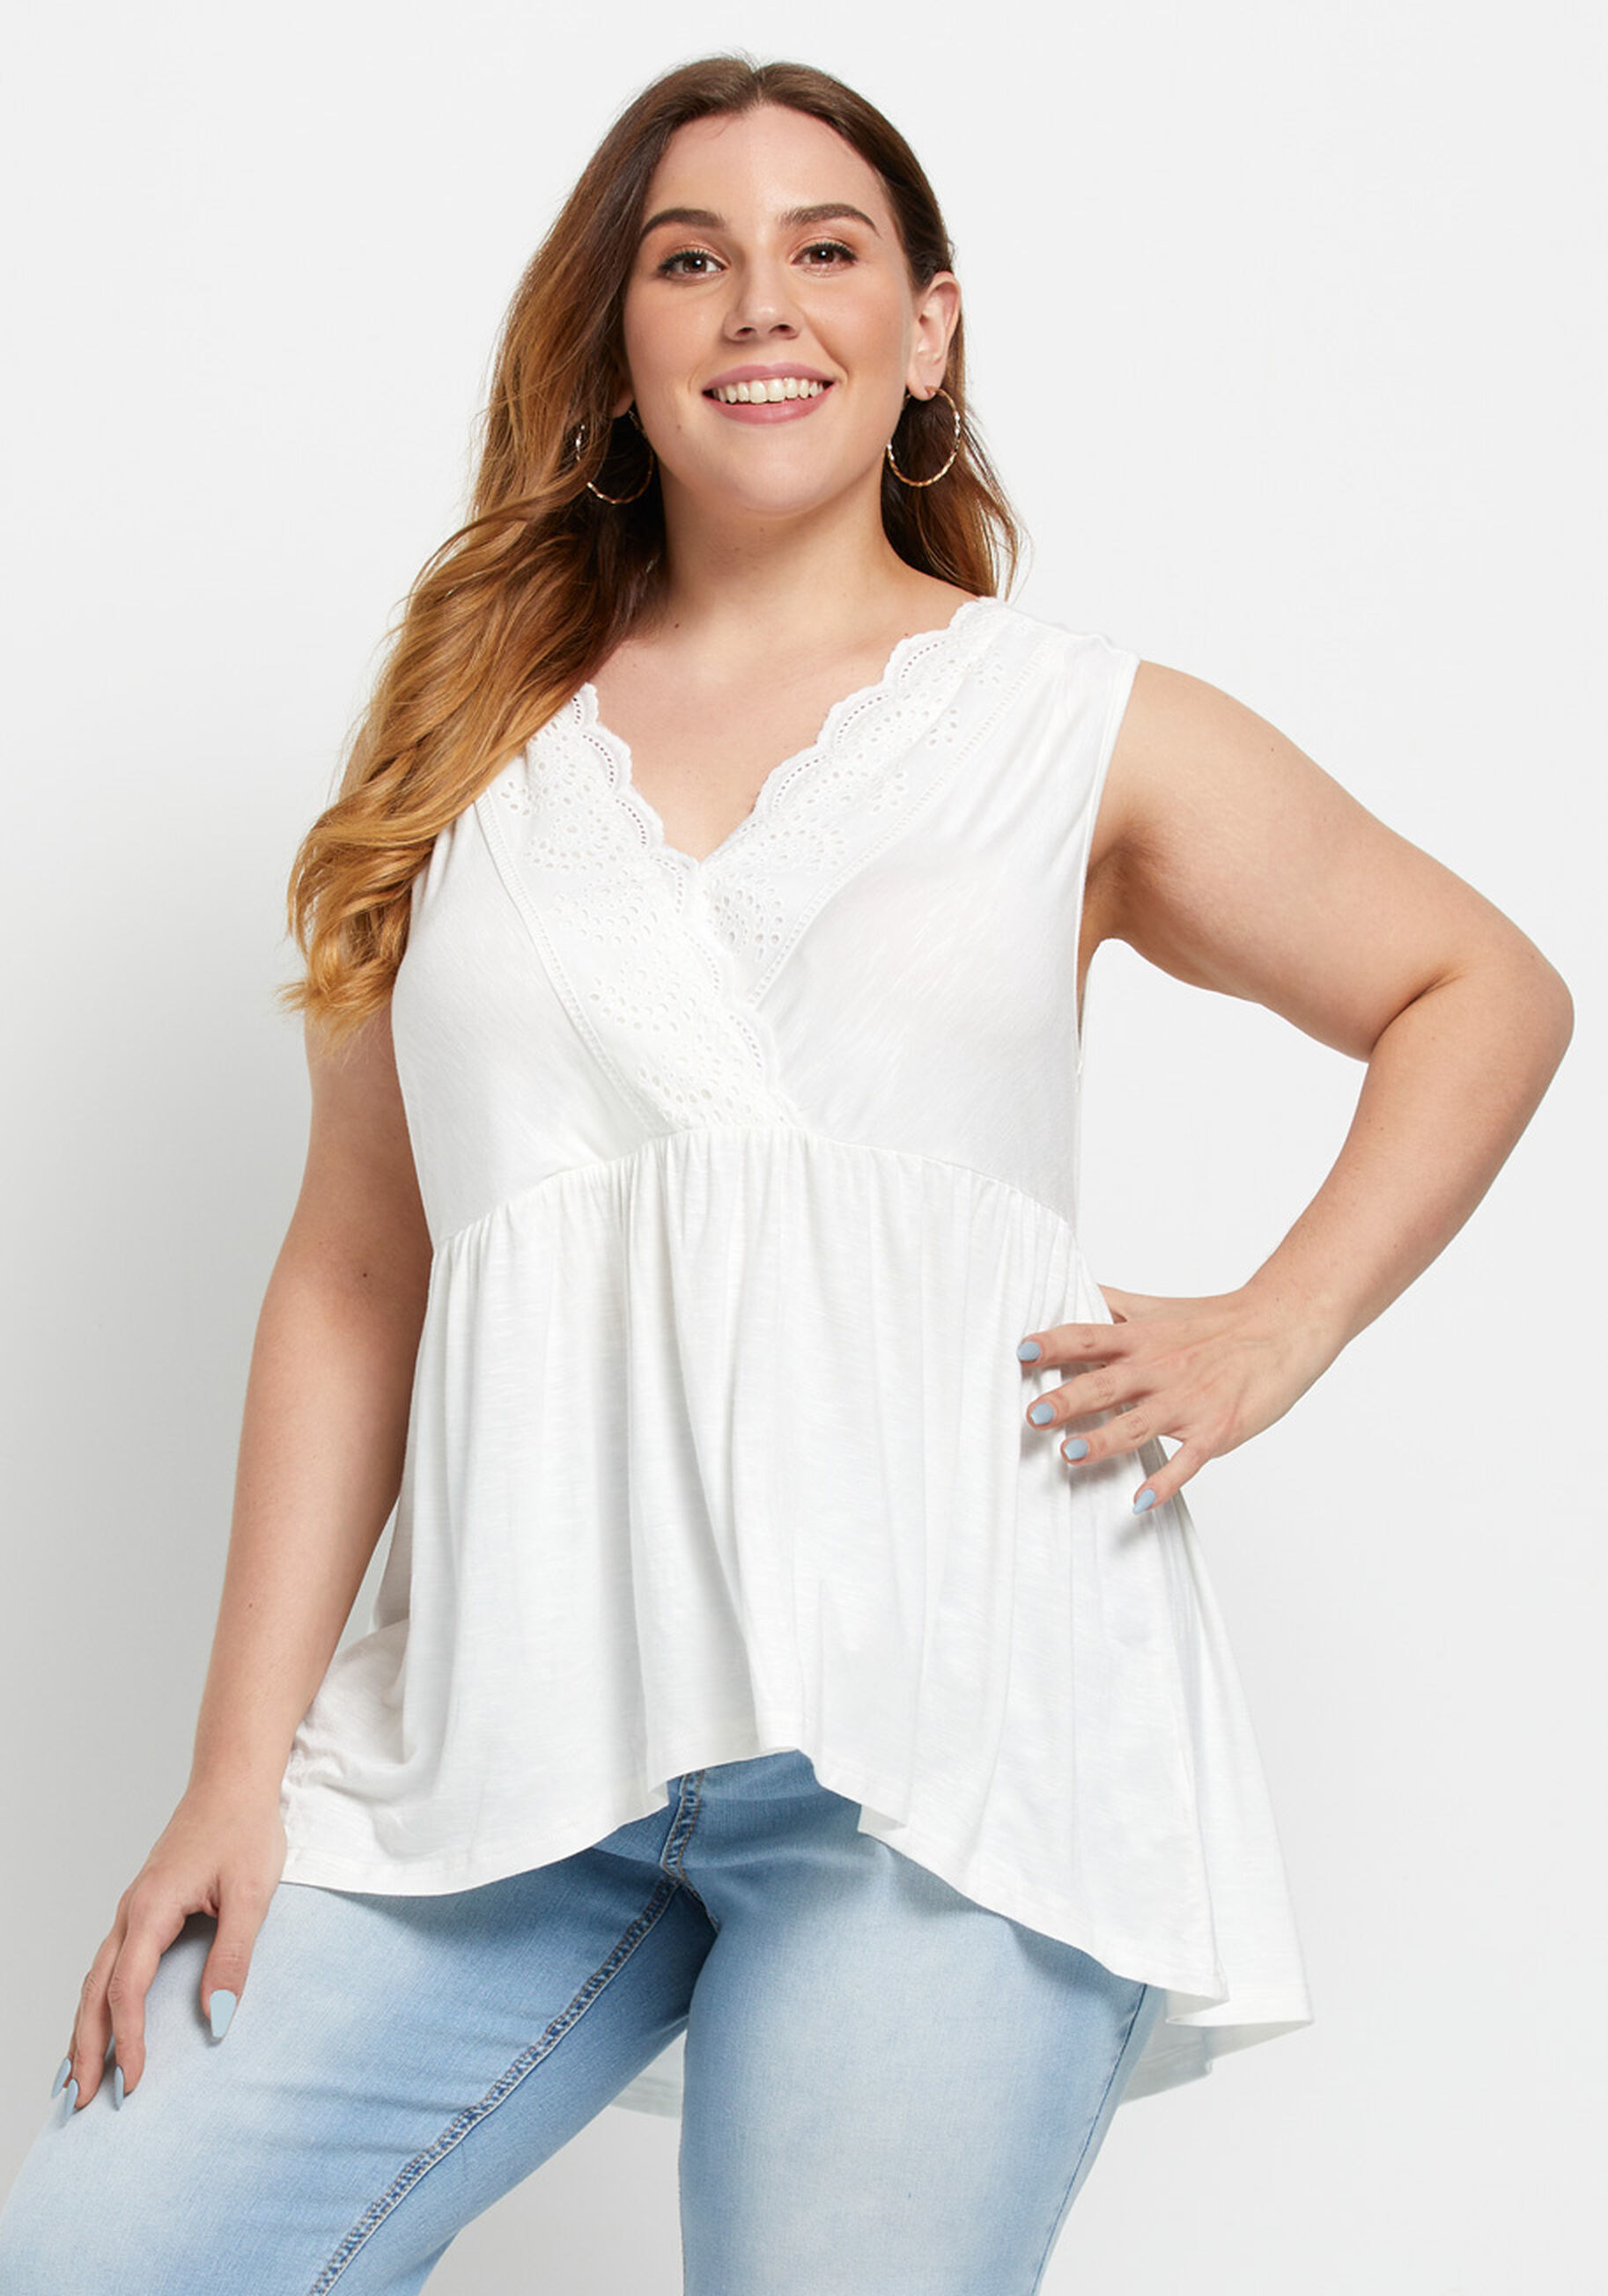 A model wearing the v-neck tank top with eyelet trim by the neckline in white